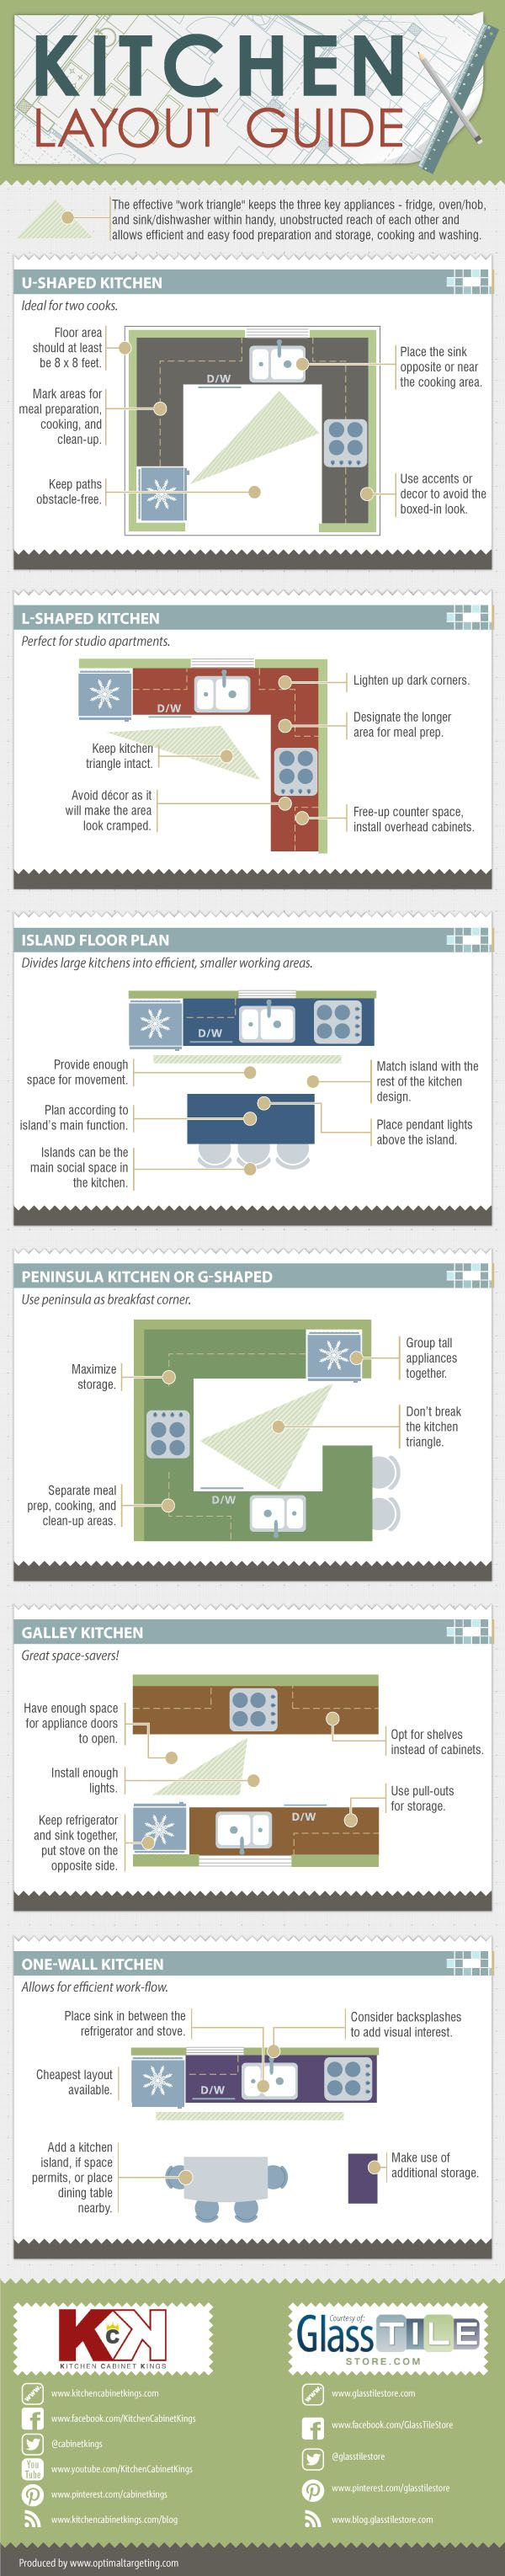 Kitchen Layouts How to Choose a Kitchen Layout Based on the Fridge Oven Sink…